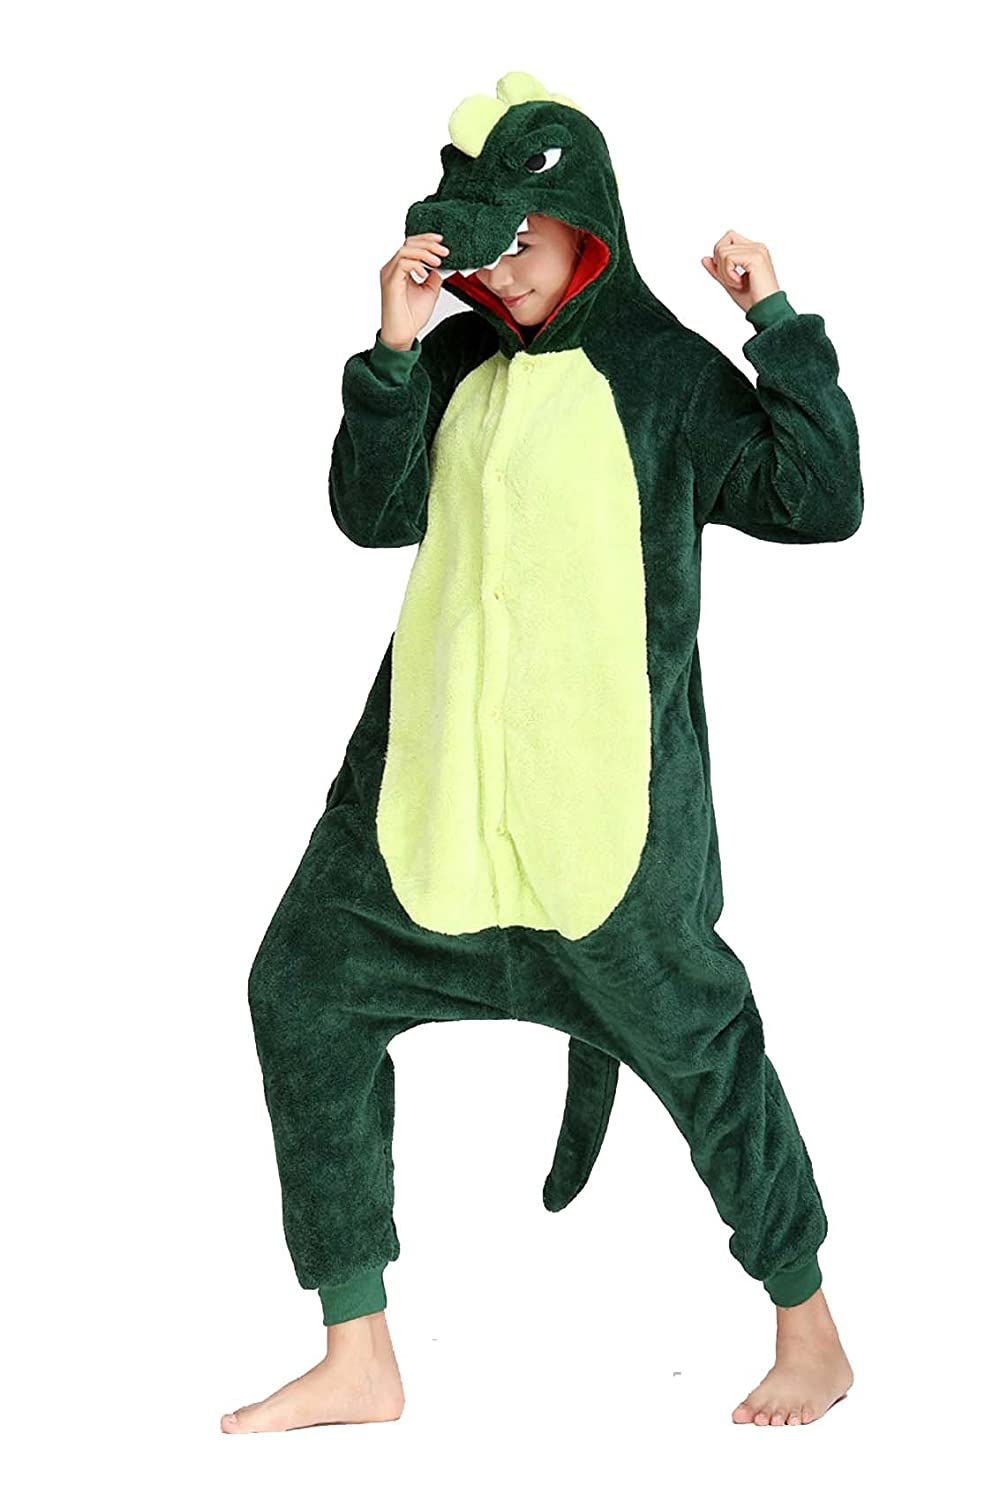 XMiniLife Dinosaur Family Adult Cosplay Costume